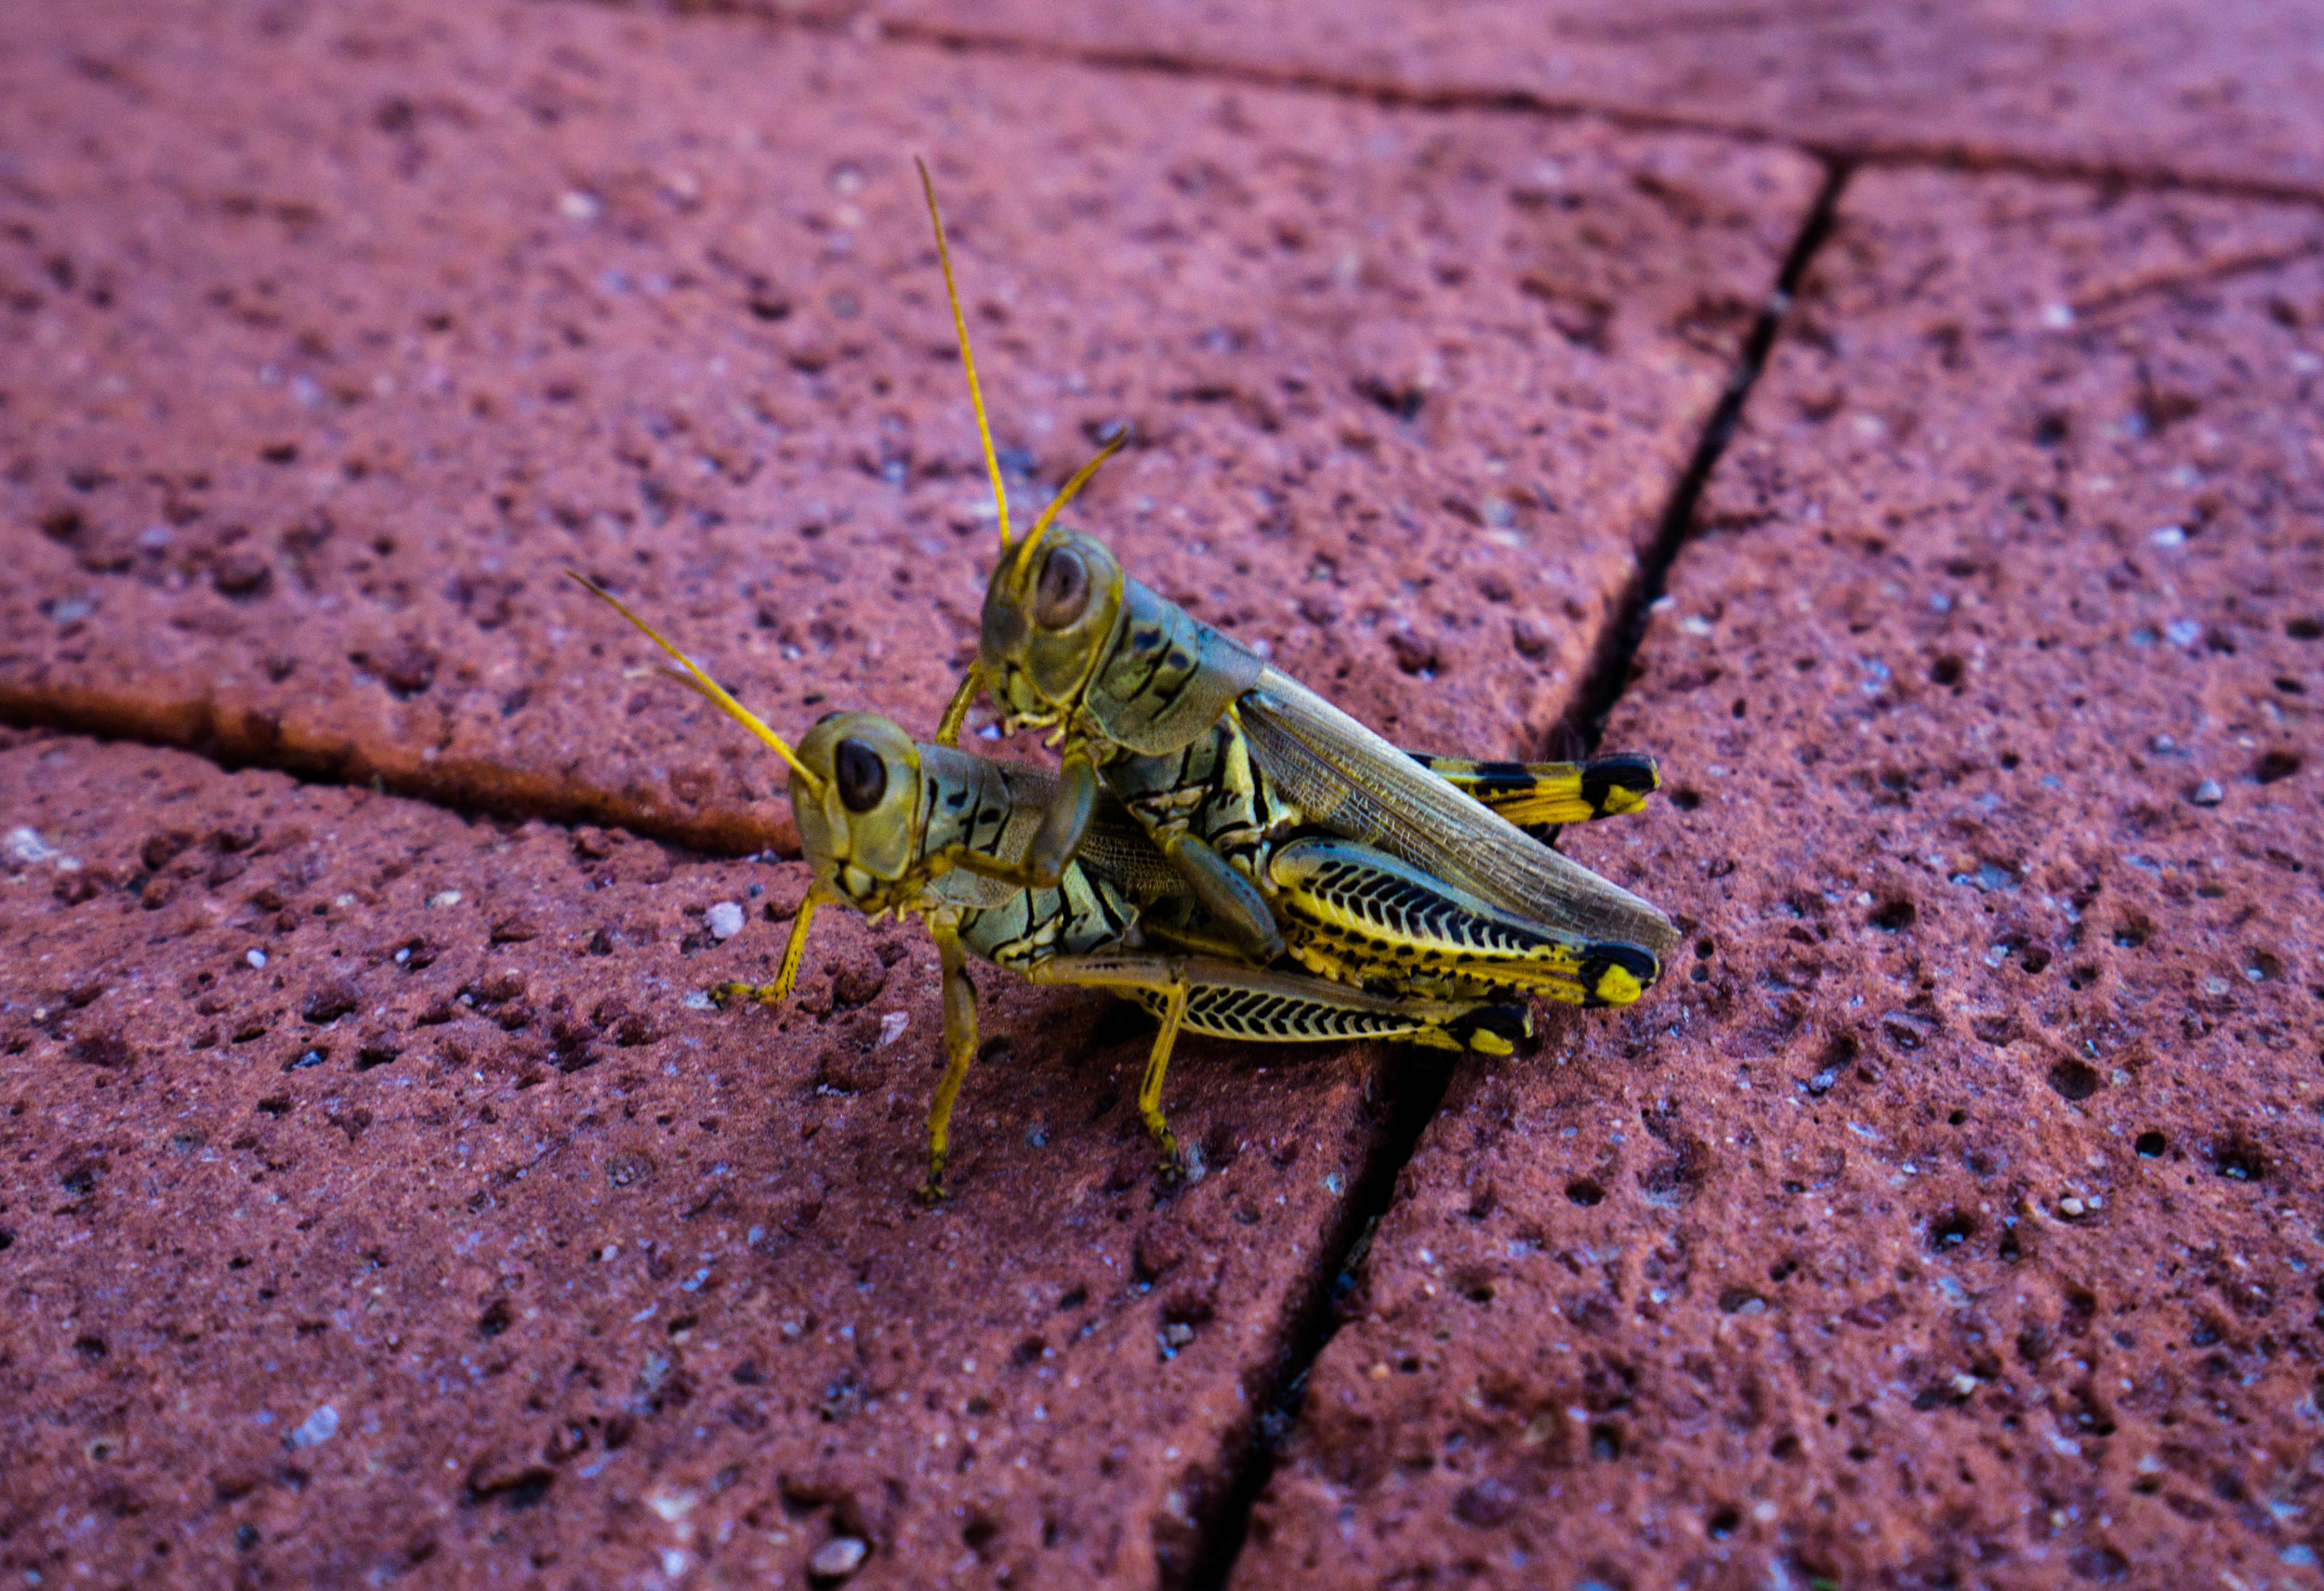 vickygood_photography_nature_grasshoppers.jpg